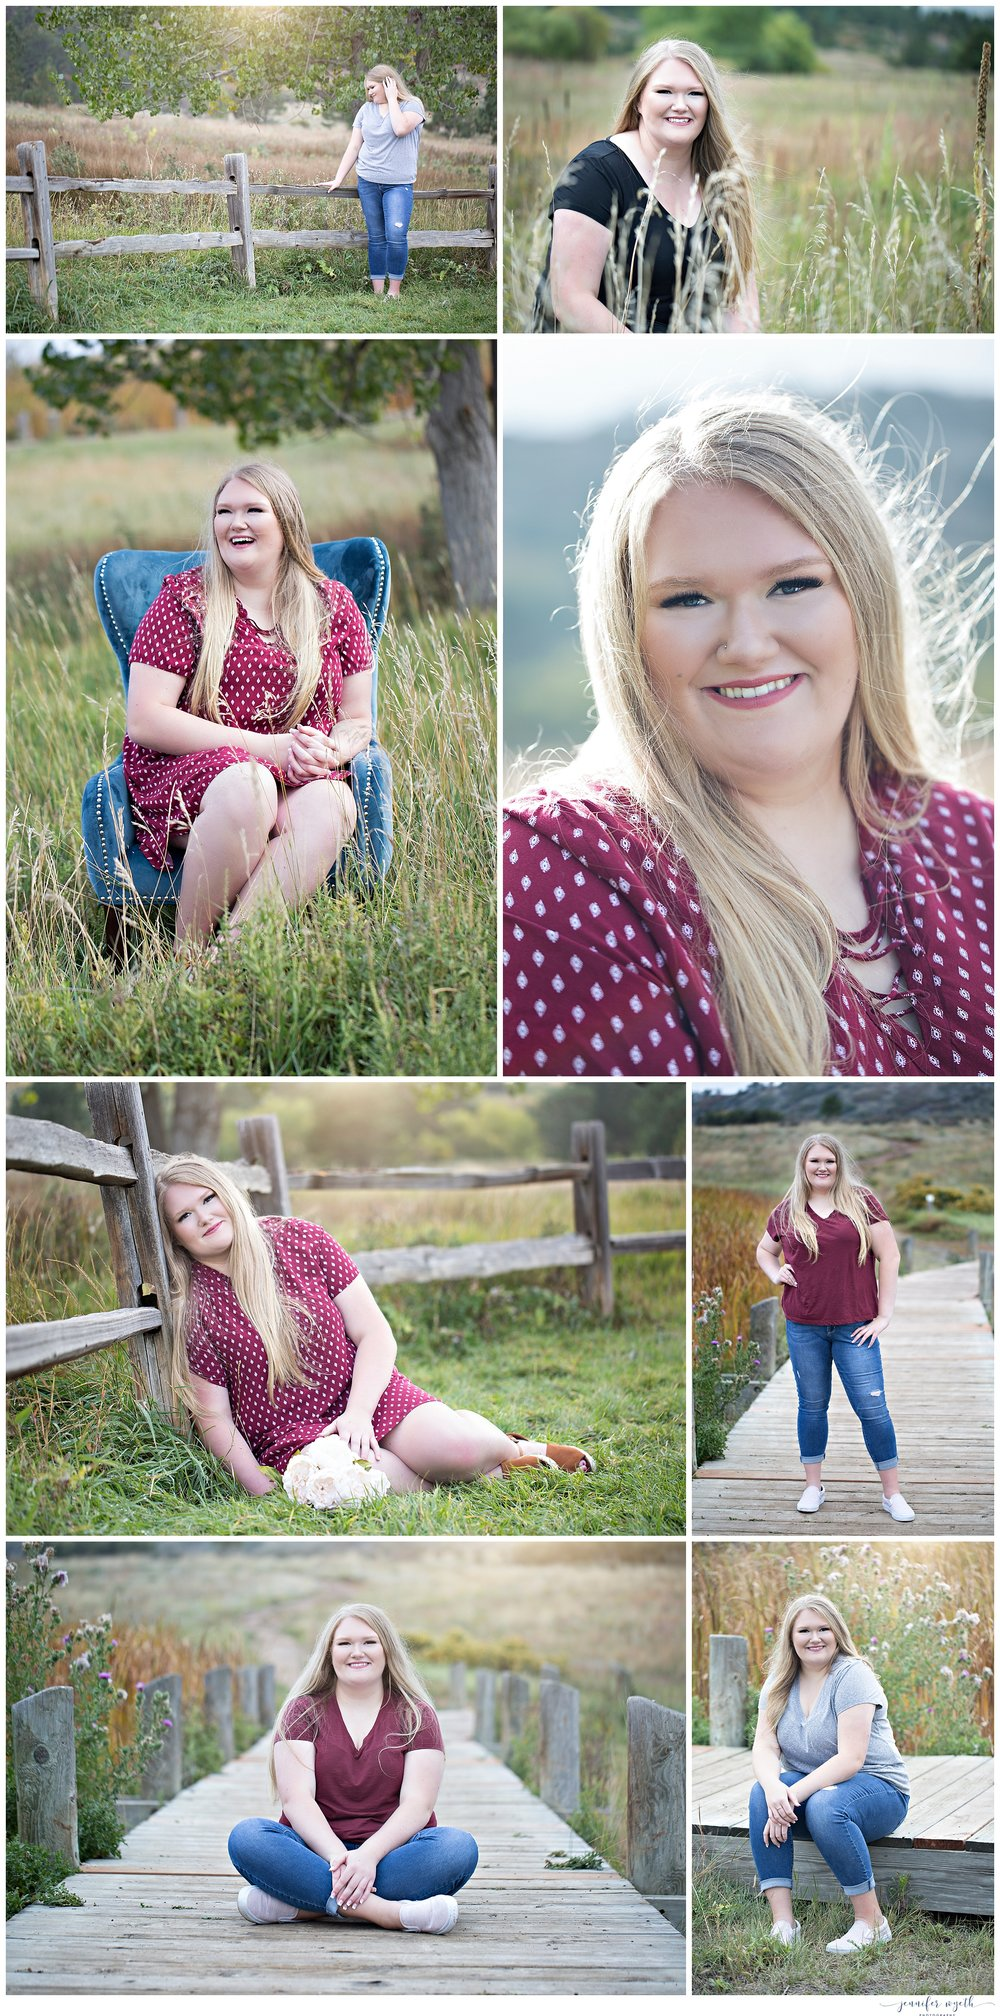 Jennifer-Wyeth-photography-senior-pictures-colorado-springs-photographer_0243.jpg